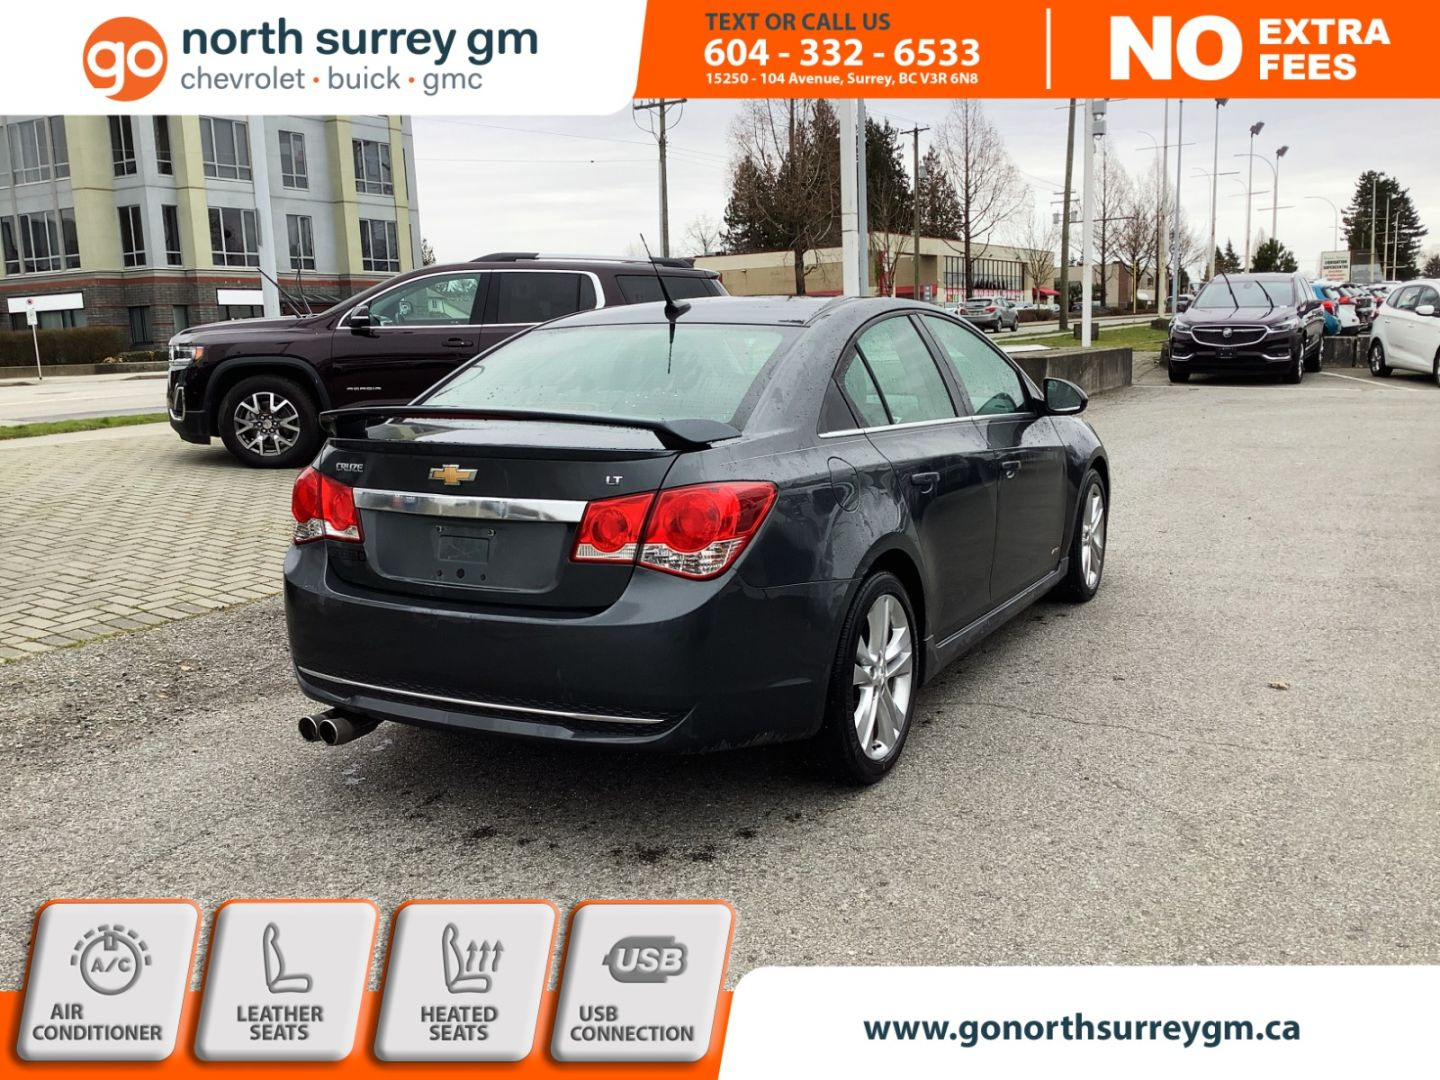 2013 Chevrolet Cruze LT Turbo for sale in Surrey, British Columbia